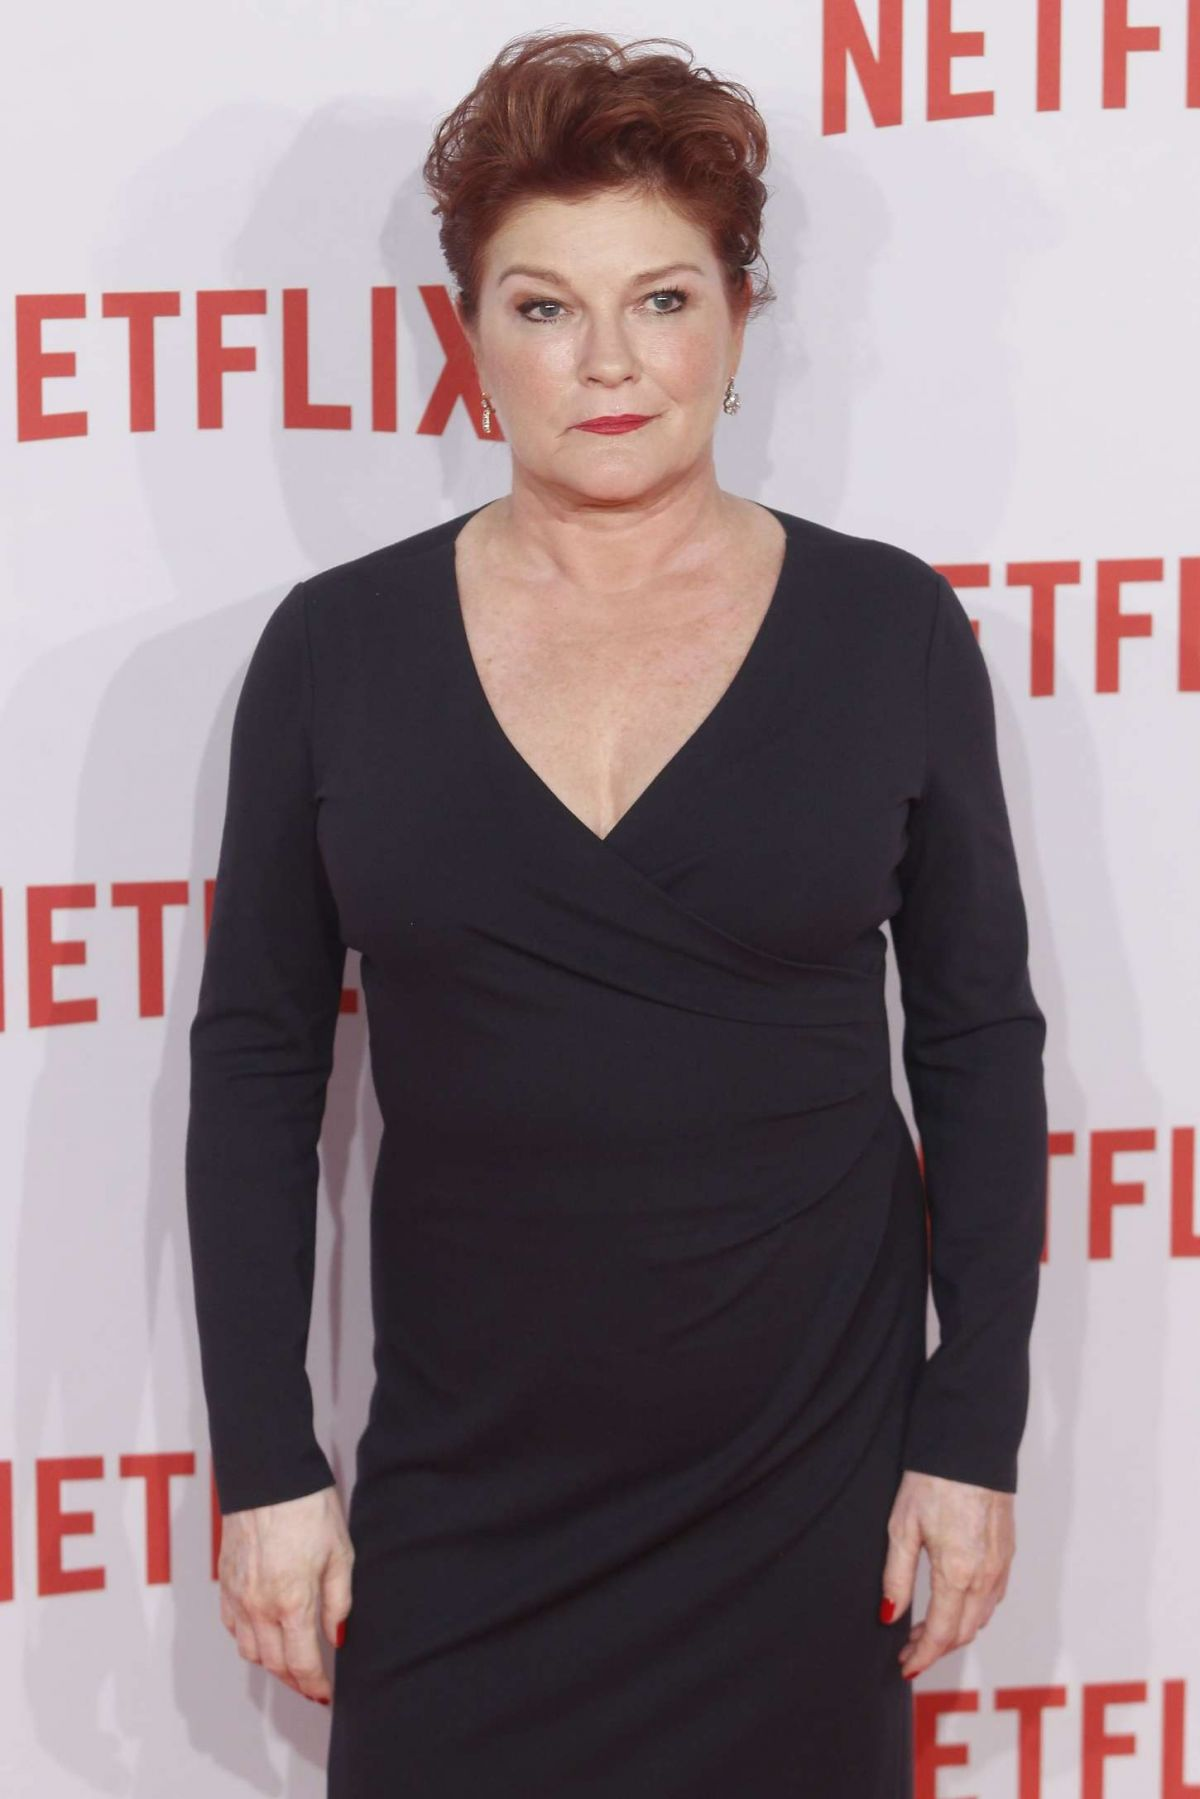 KATE MULGREW at Netflix at Netflix Spain's Presentation in Madrid 10/20/2015